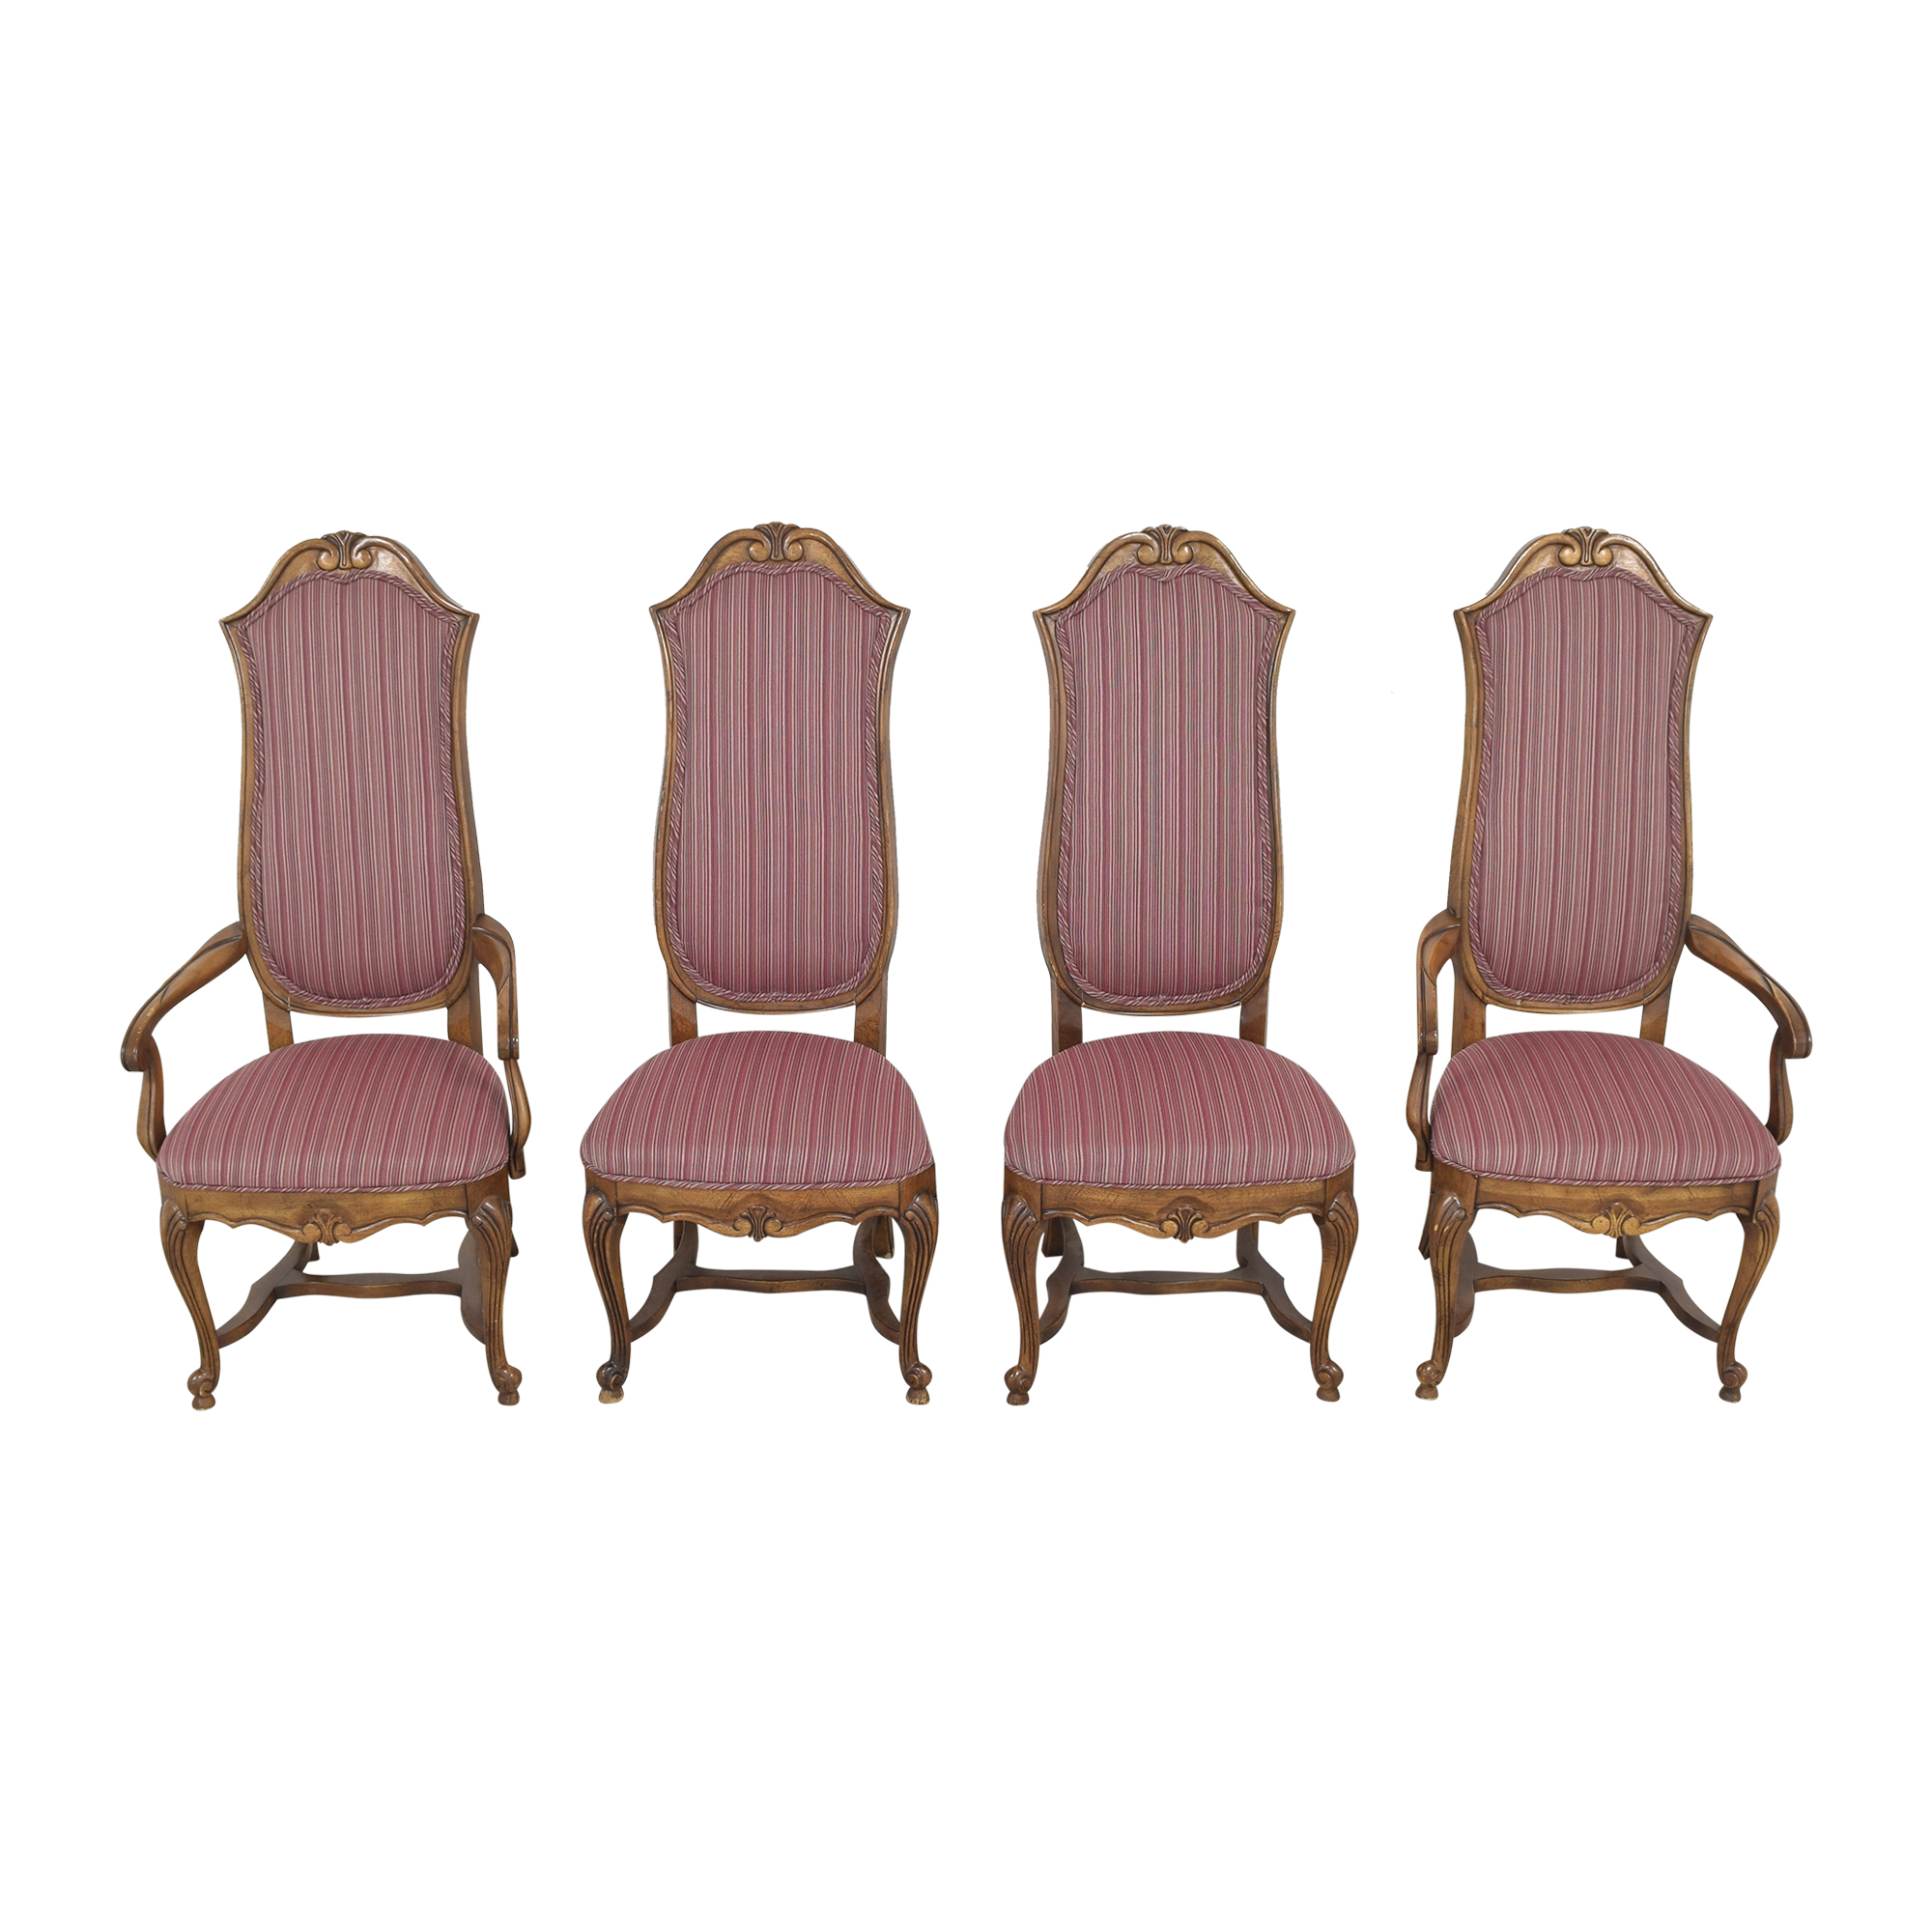 Ethan Allen Ethan Allen High Back Dining Chairs nyc